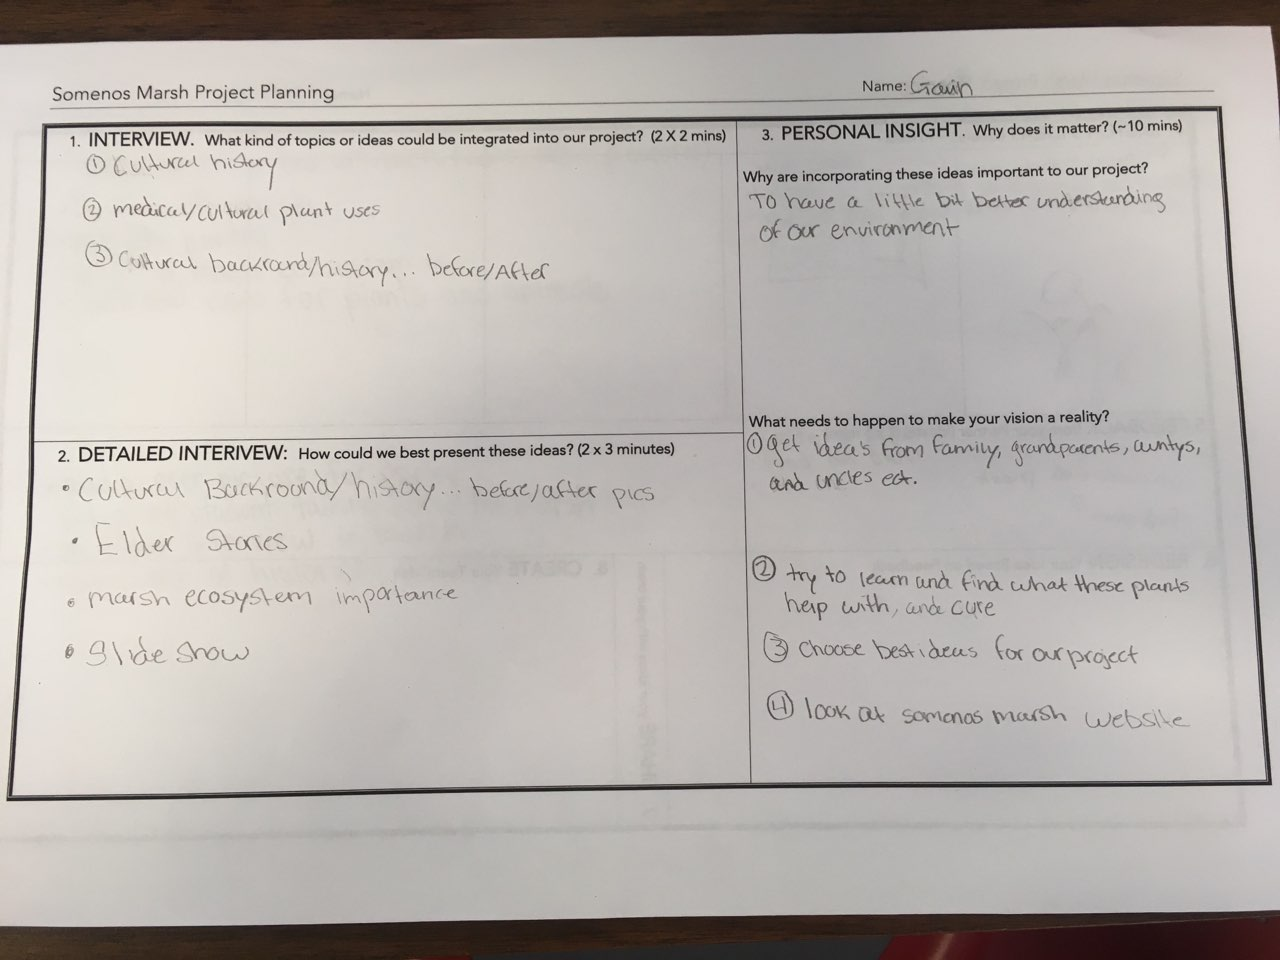 CSS Land Based Learning: Using Design Thinking to Plan Our